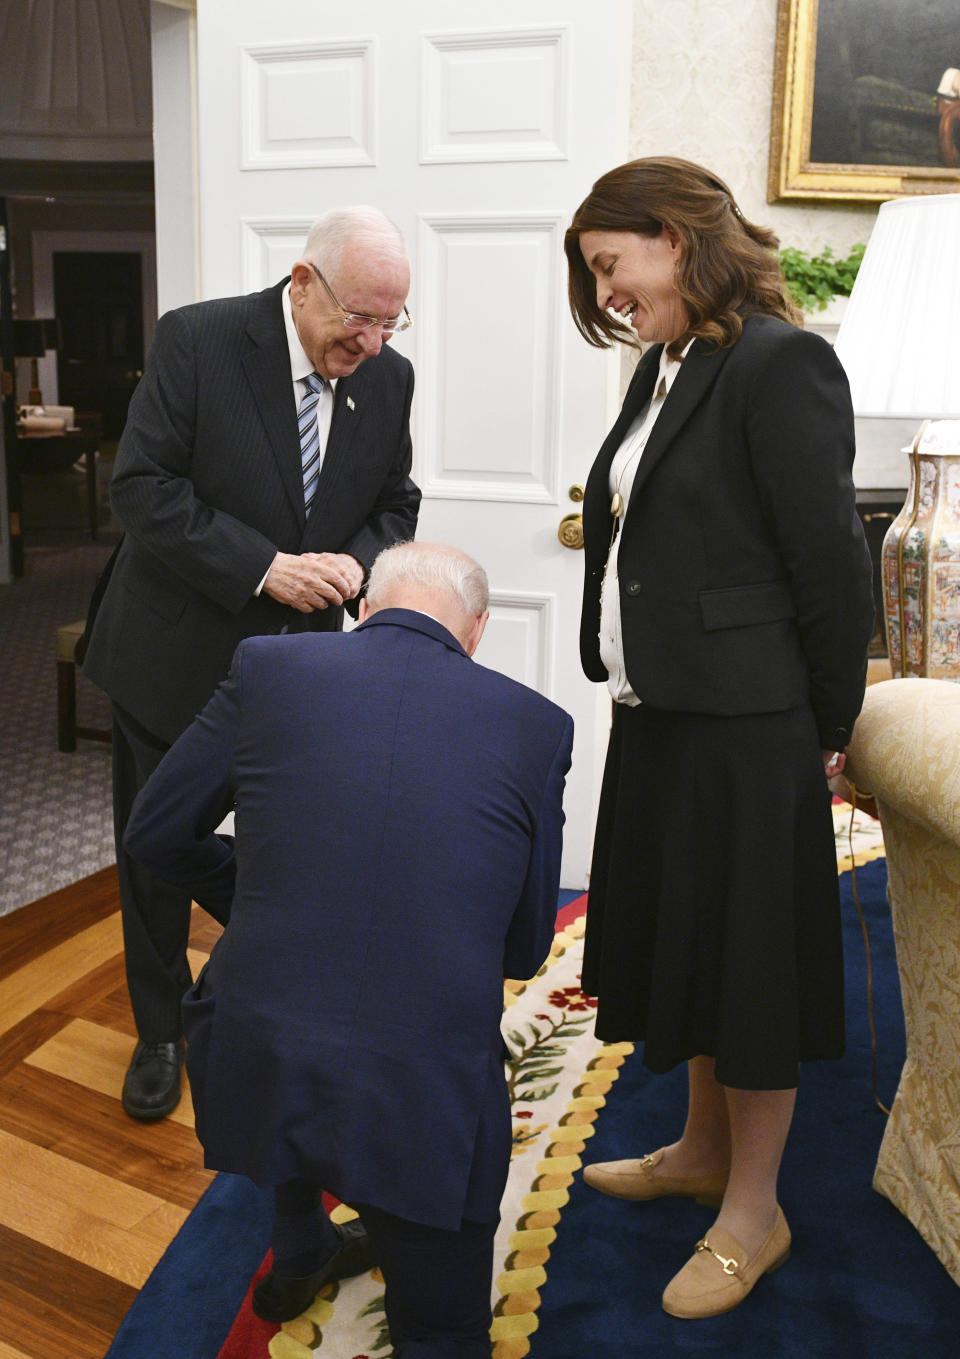 """In this June 28, 2021 photo provided by the Israeli Government Press Office, President Joe Biden, center, meets with Israel President Reuven Rivli, left, and Rivka Ravitz, head of Rivli's delegation, in the White House in Washington. On Friday, July 9, 2021, The Associated Press reported on stories circulating online incorrectly asserting Biden was kneeling down to the Israeli president, """"pledging unconditional support to Israel."""" But Haim Zach, a press photographer for the Israeli government, said Biden knelt after learning Ravitz was the mother of 12, saying as a Catholic man he wanted to show his admiration. (Haim Zach/GPO via AP)"""